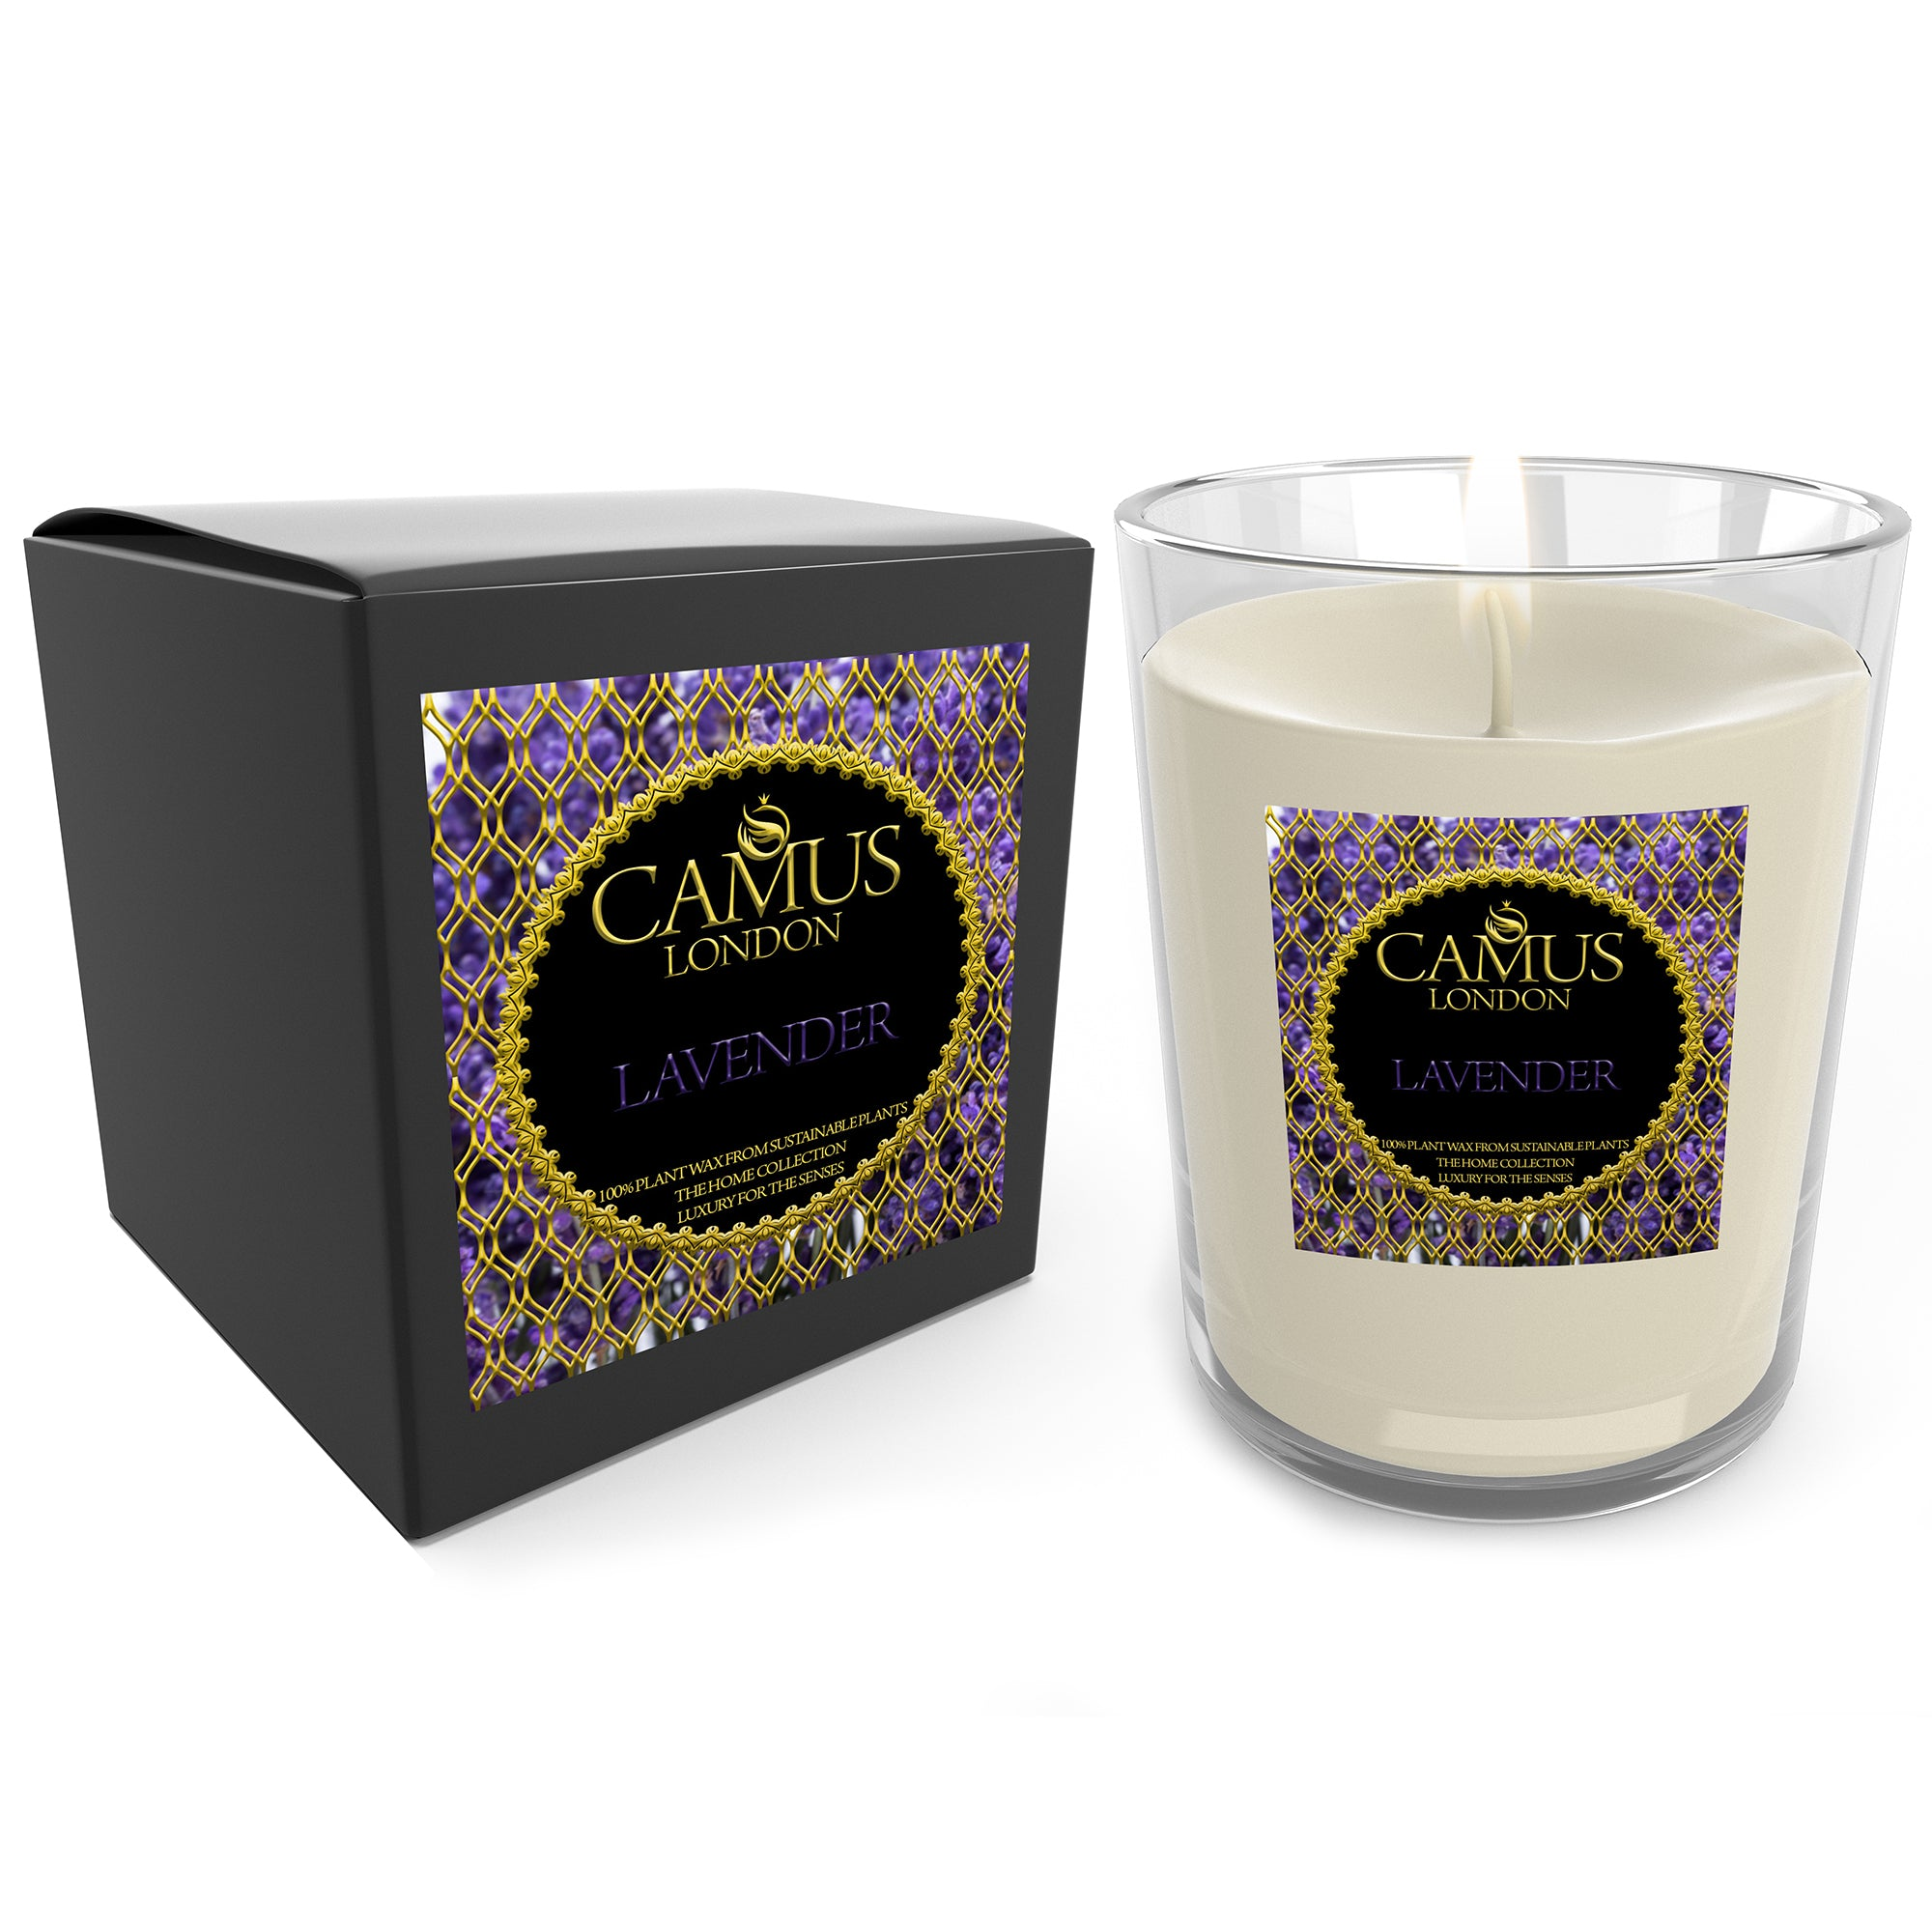 The Home Collection Essential Oil Lavender Luxury Candle 100% Plant Wax